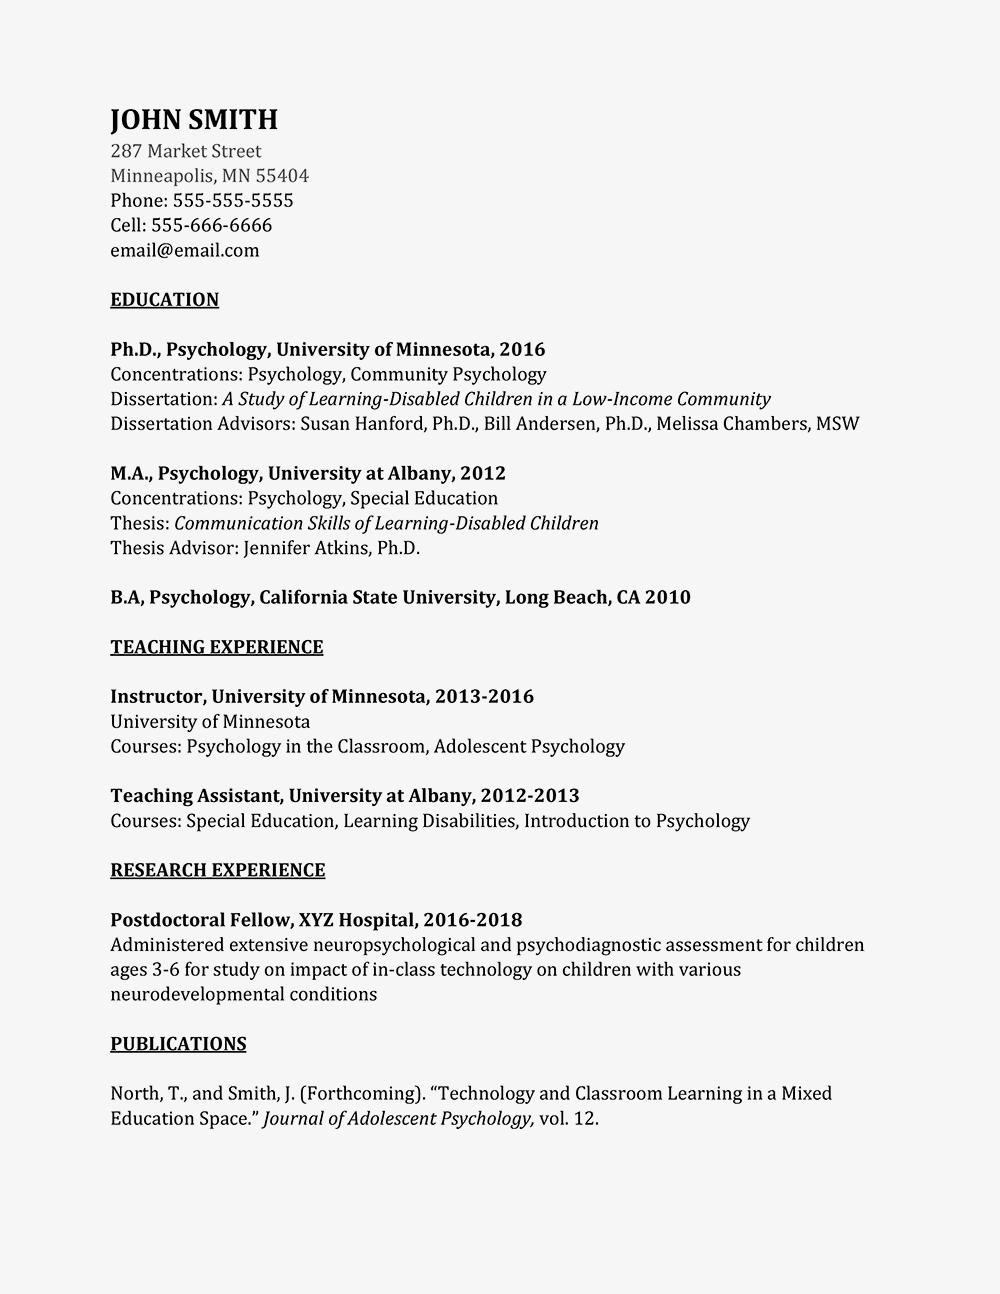 academic curriculum vitae cv example and writing tips  short essays for high school students also high school entrance essay examples essay about english language